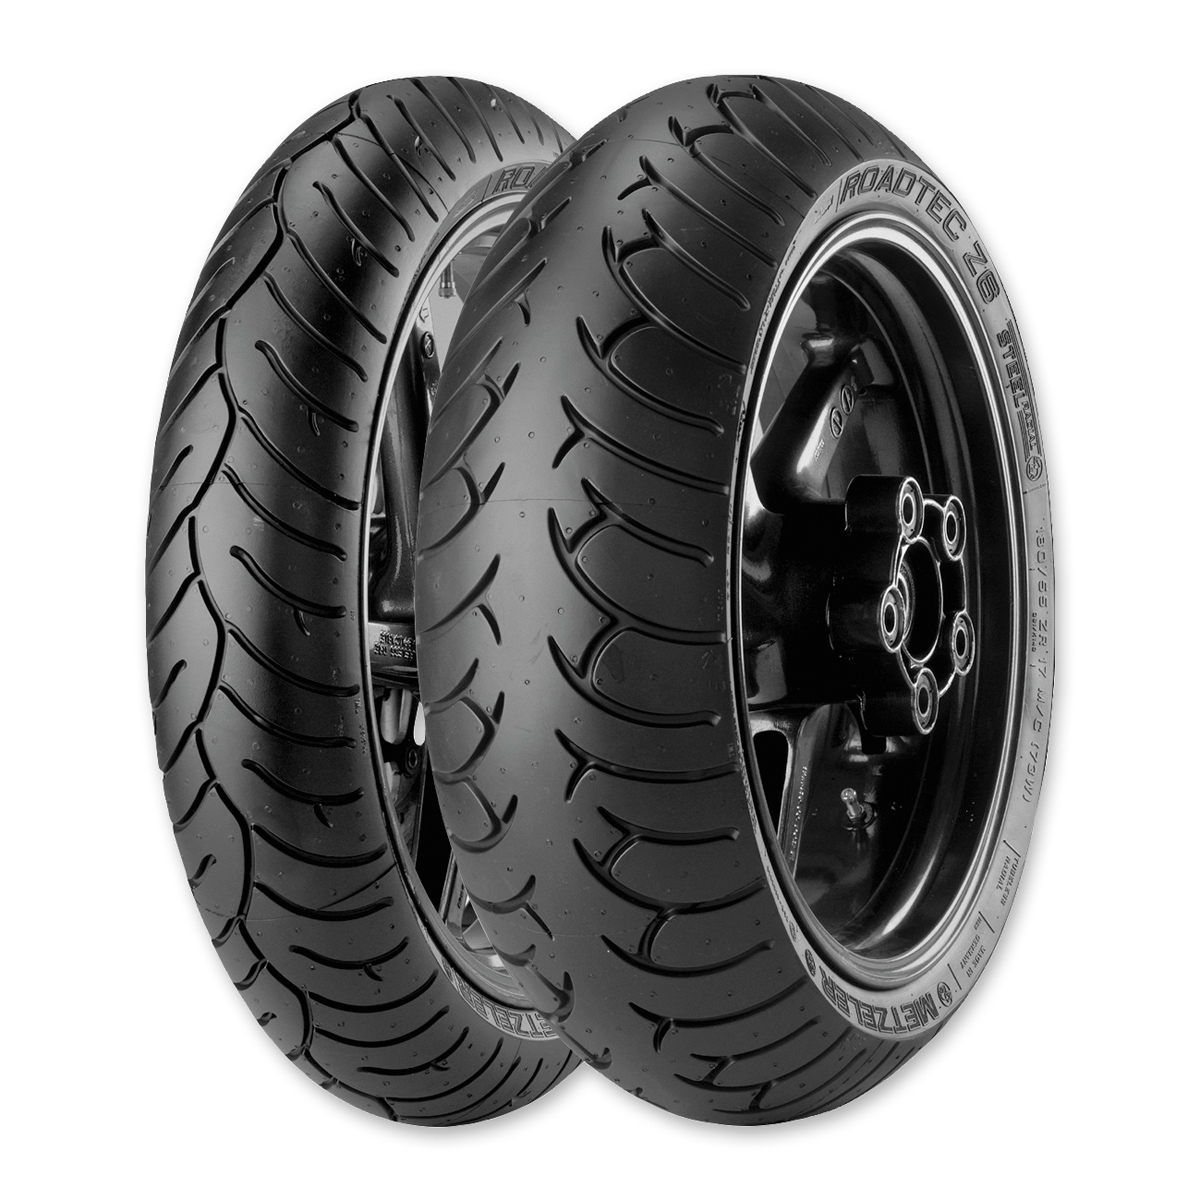 Metzeler Roadtec Z6 16060zr 17 Rear Tire 1448700